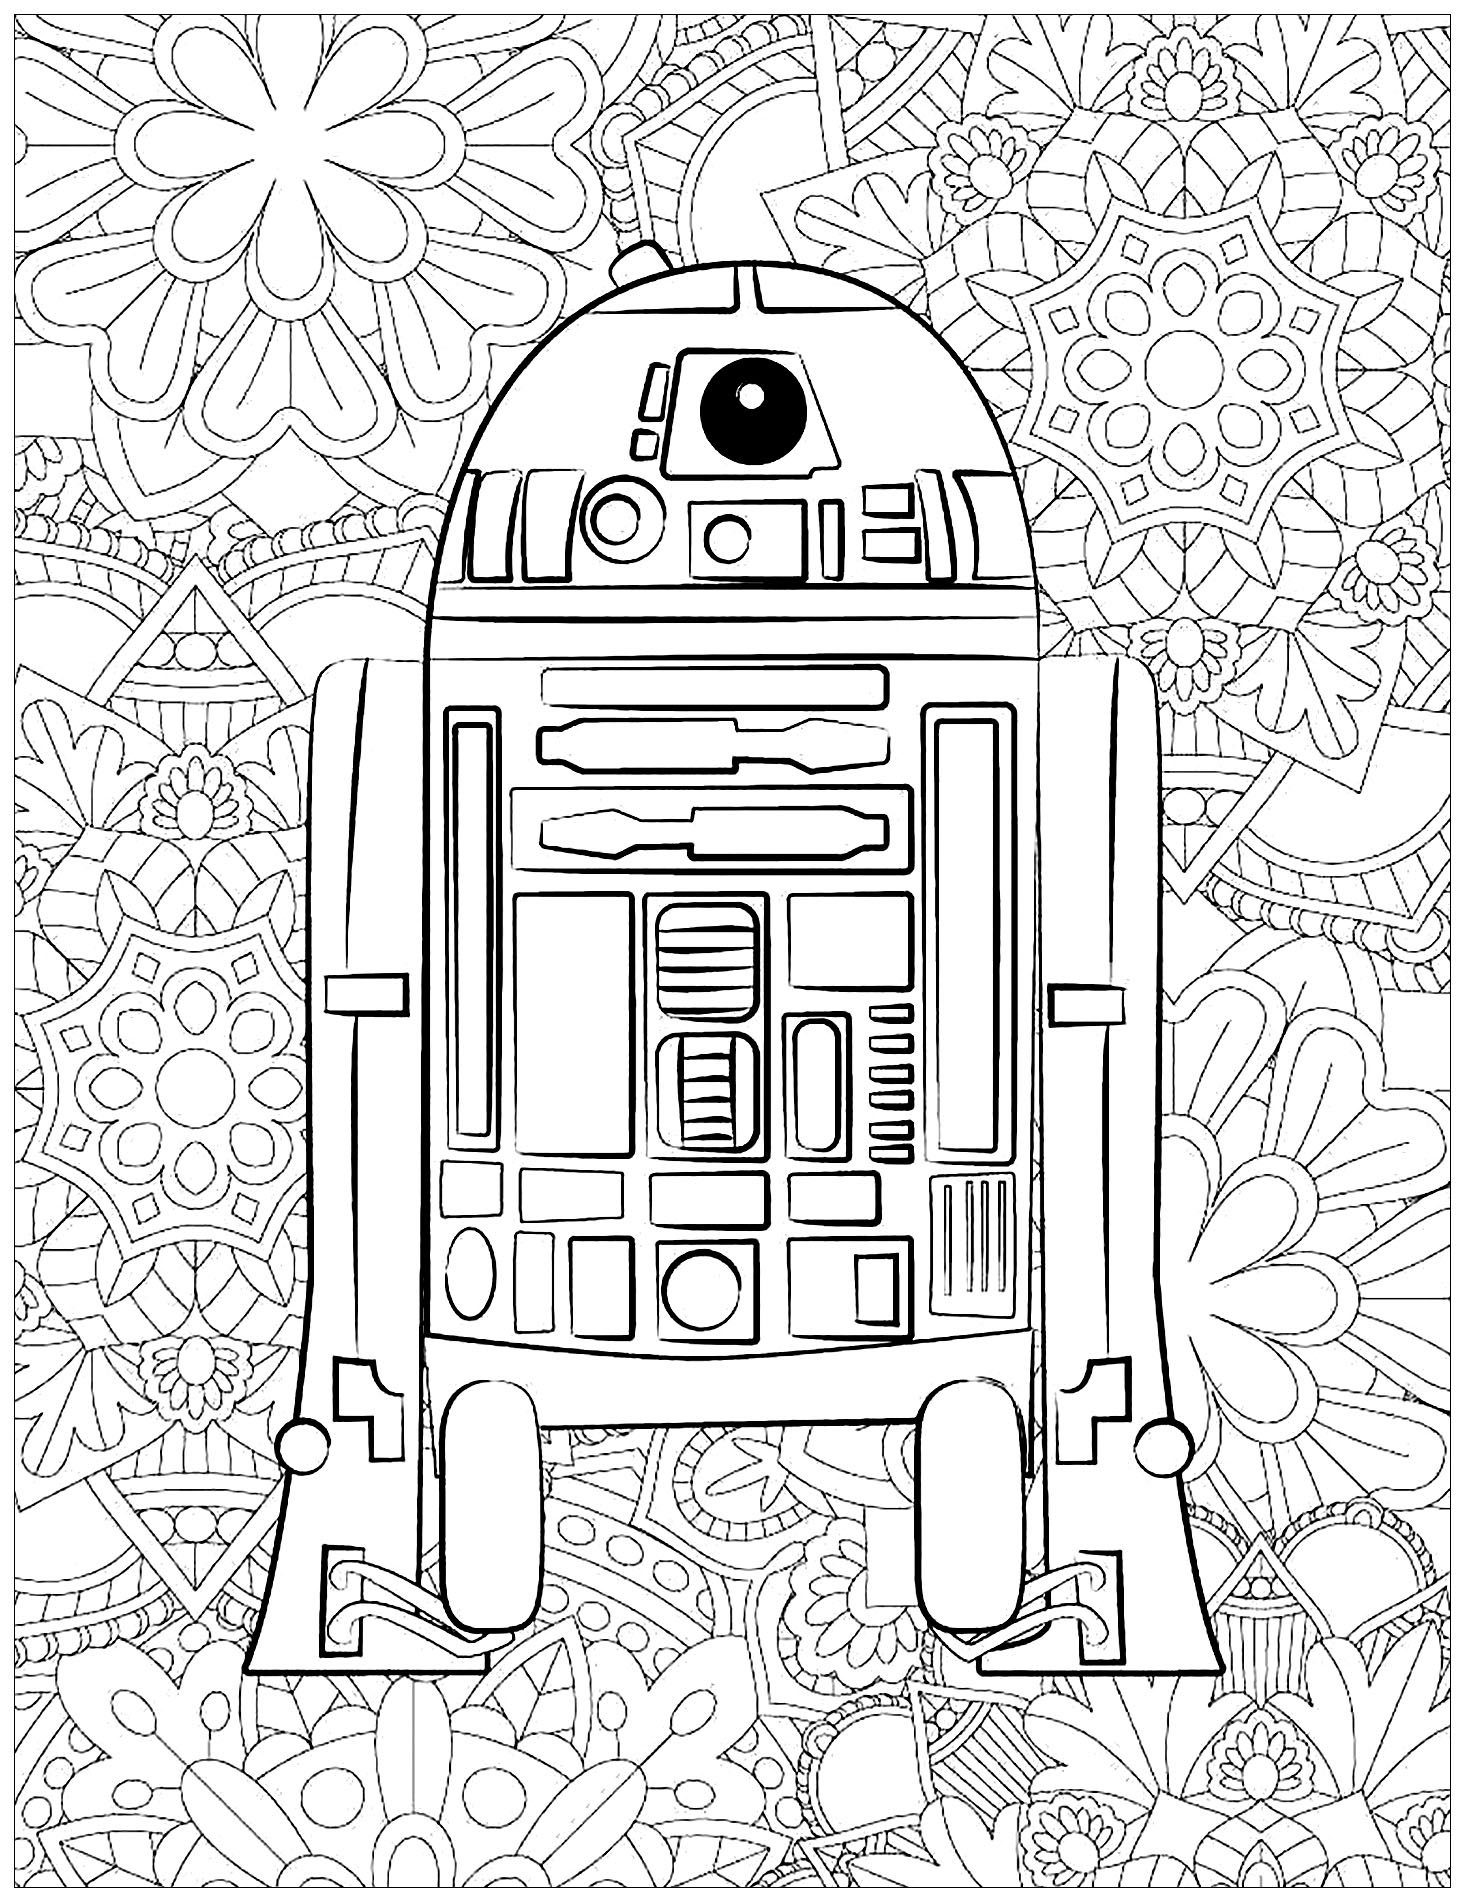 star wars free coloring pages famous star wars coloring darth vader cartoon coloring coloring wars free pages star